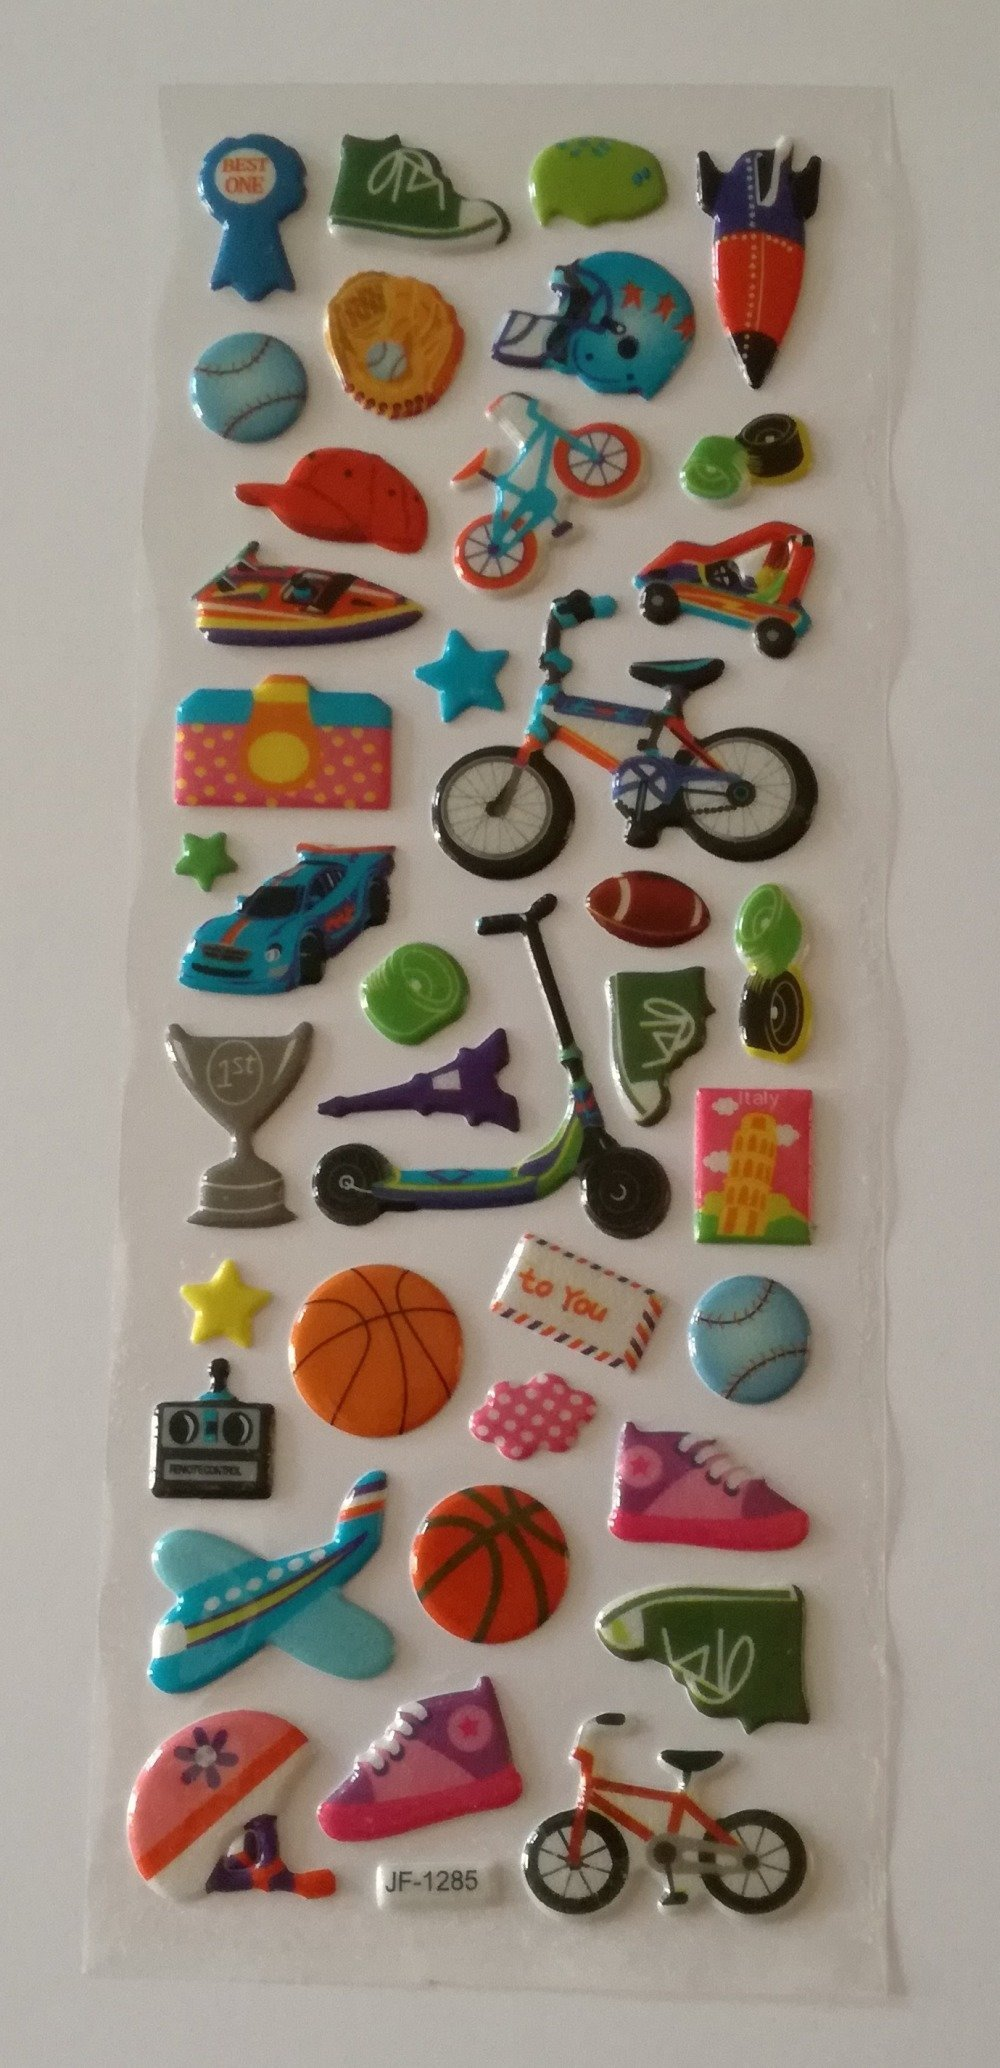 "Planche de puffy stickers "" sports """